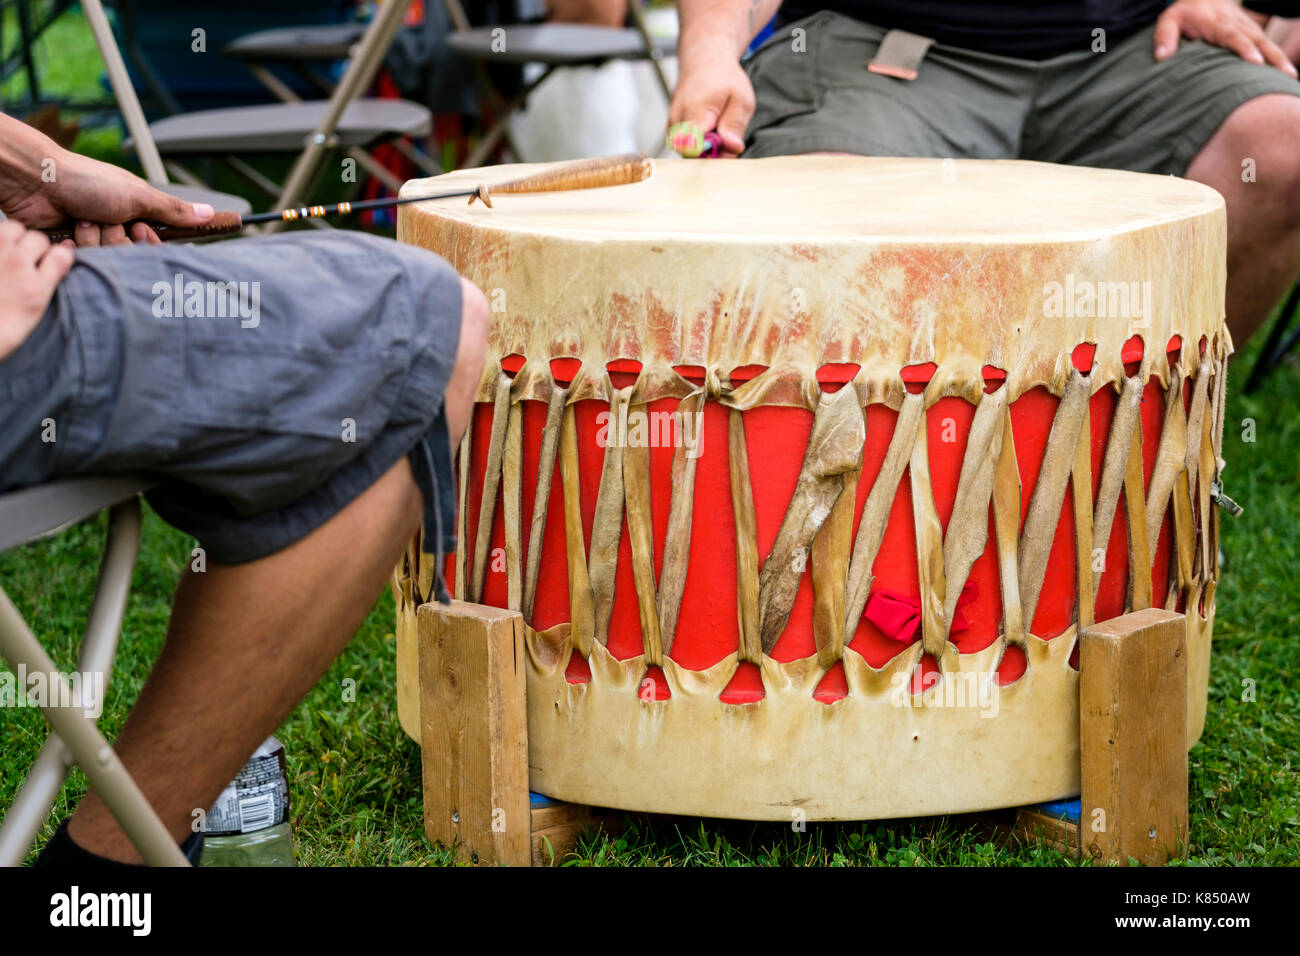 Canada First Nations ceremonial drum used for native communities ceremonies, dance, and celebrations. - Stock Image